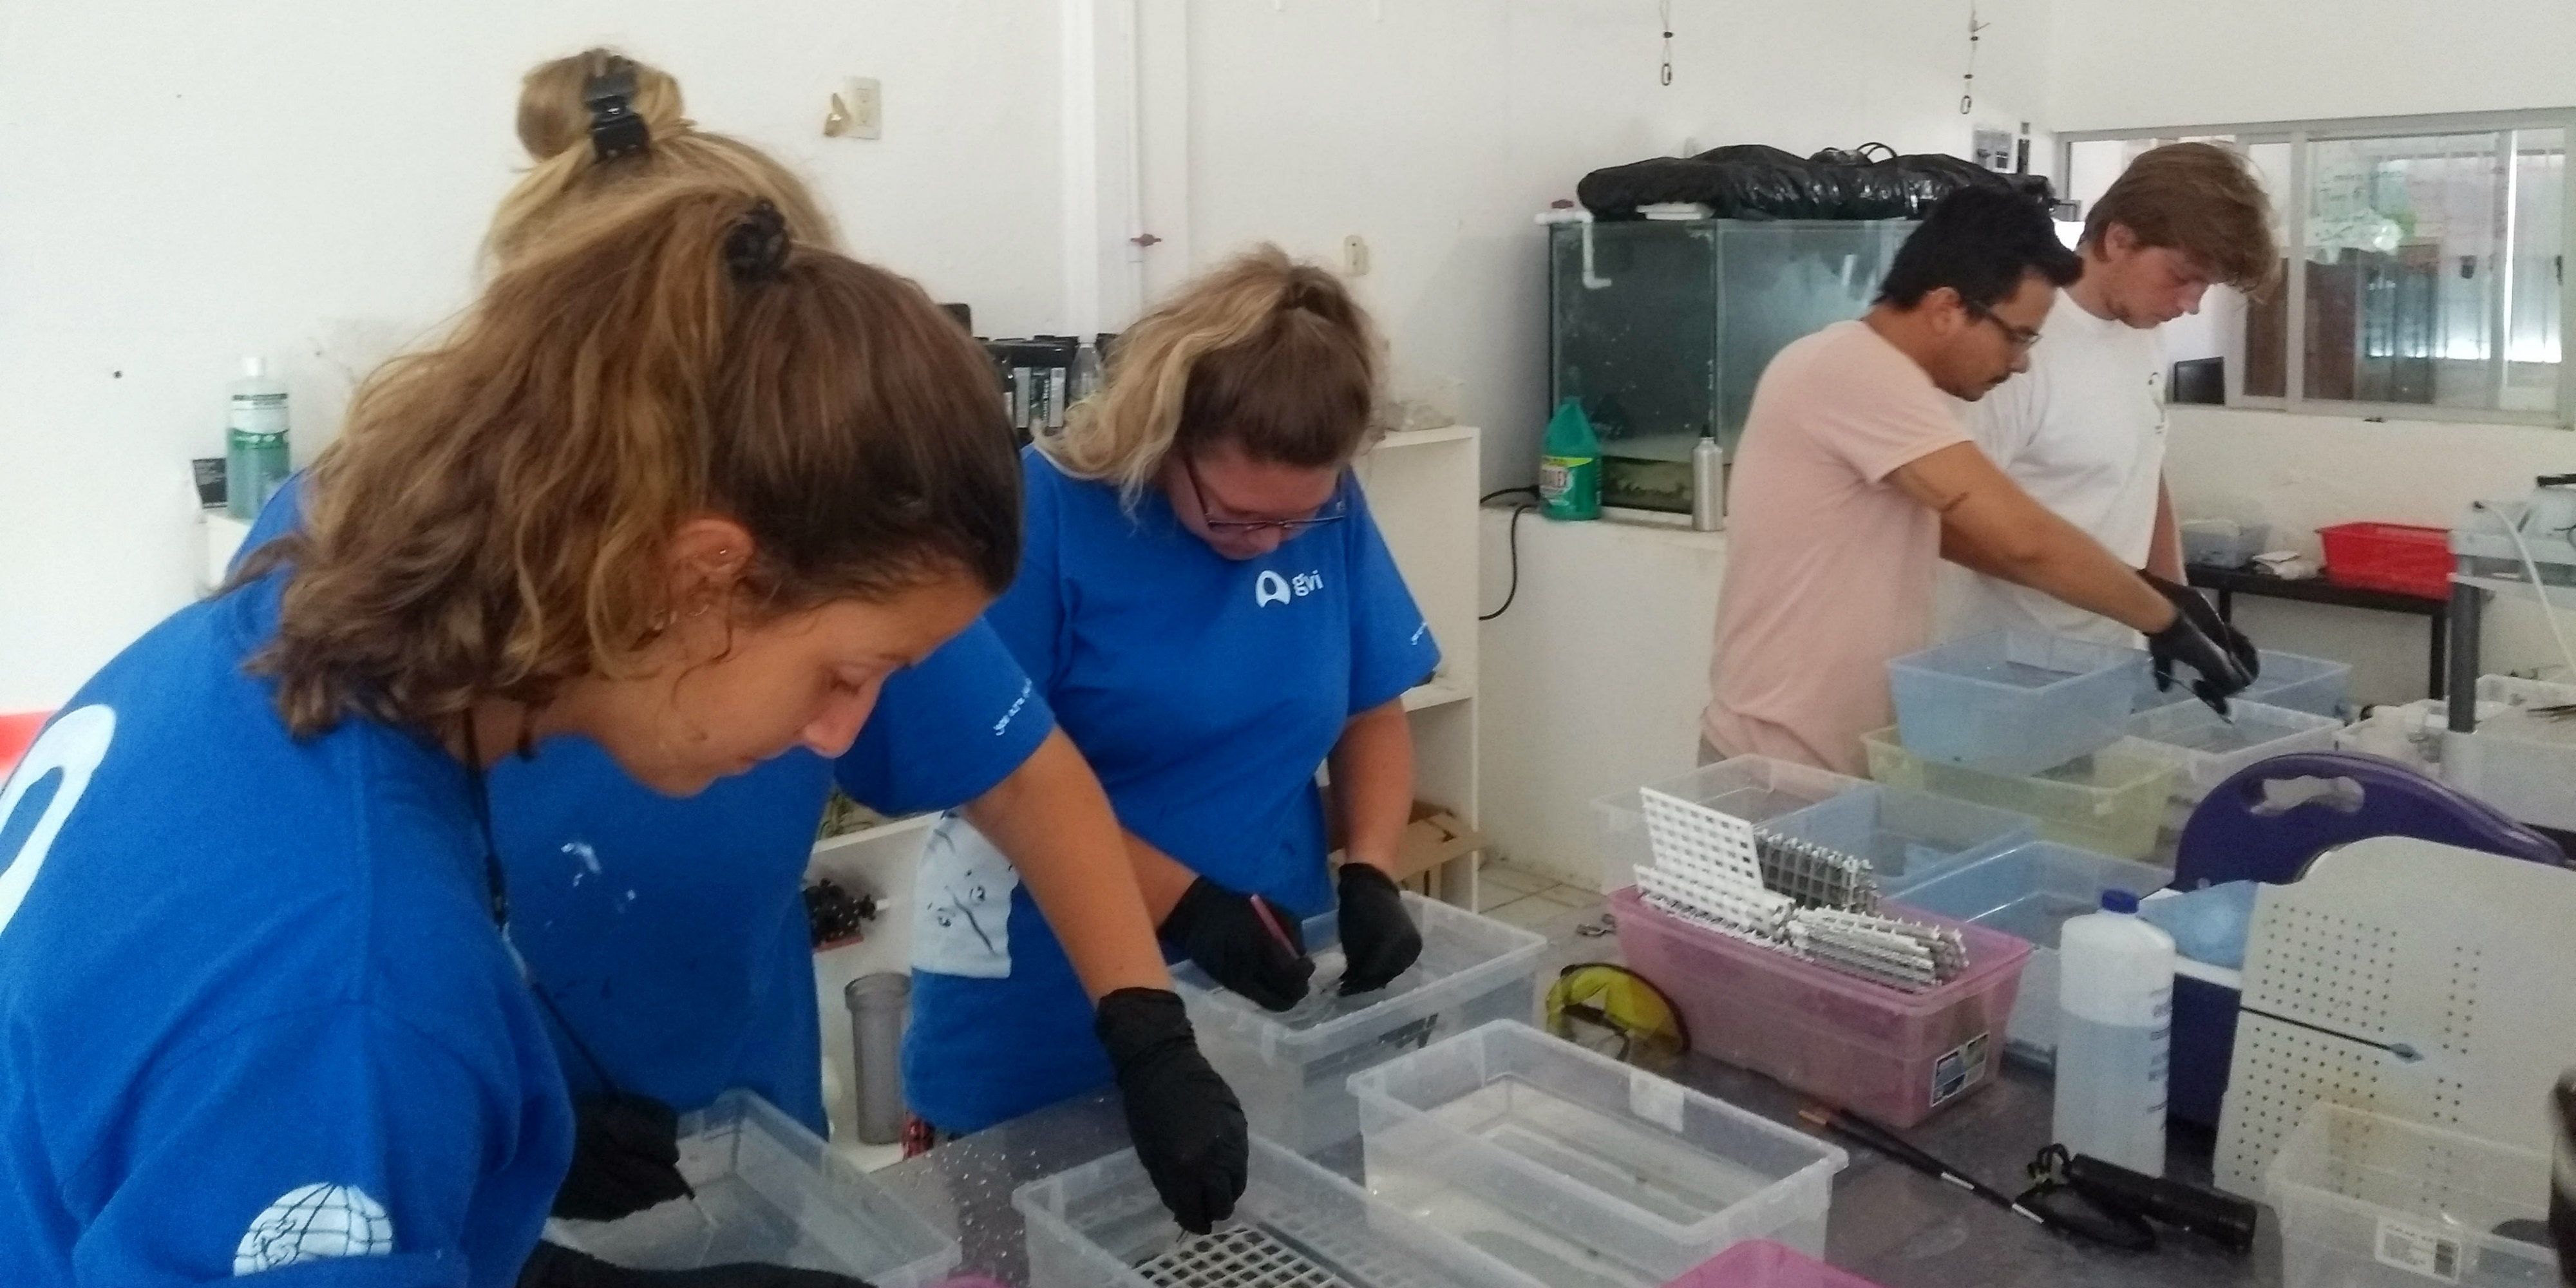 GVI participants work on growing coral polyps in Puerto Morelos, Mexico, as part of efforts to conserve the coral reef.